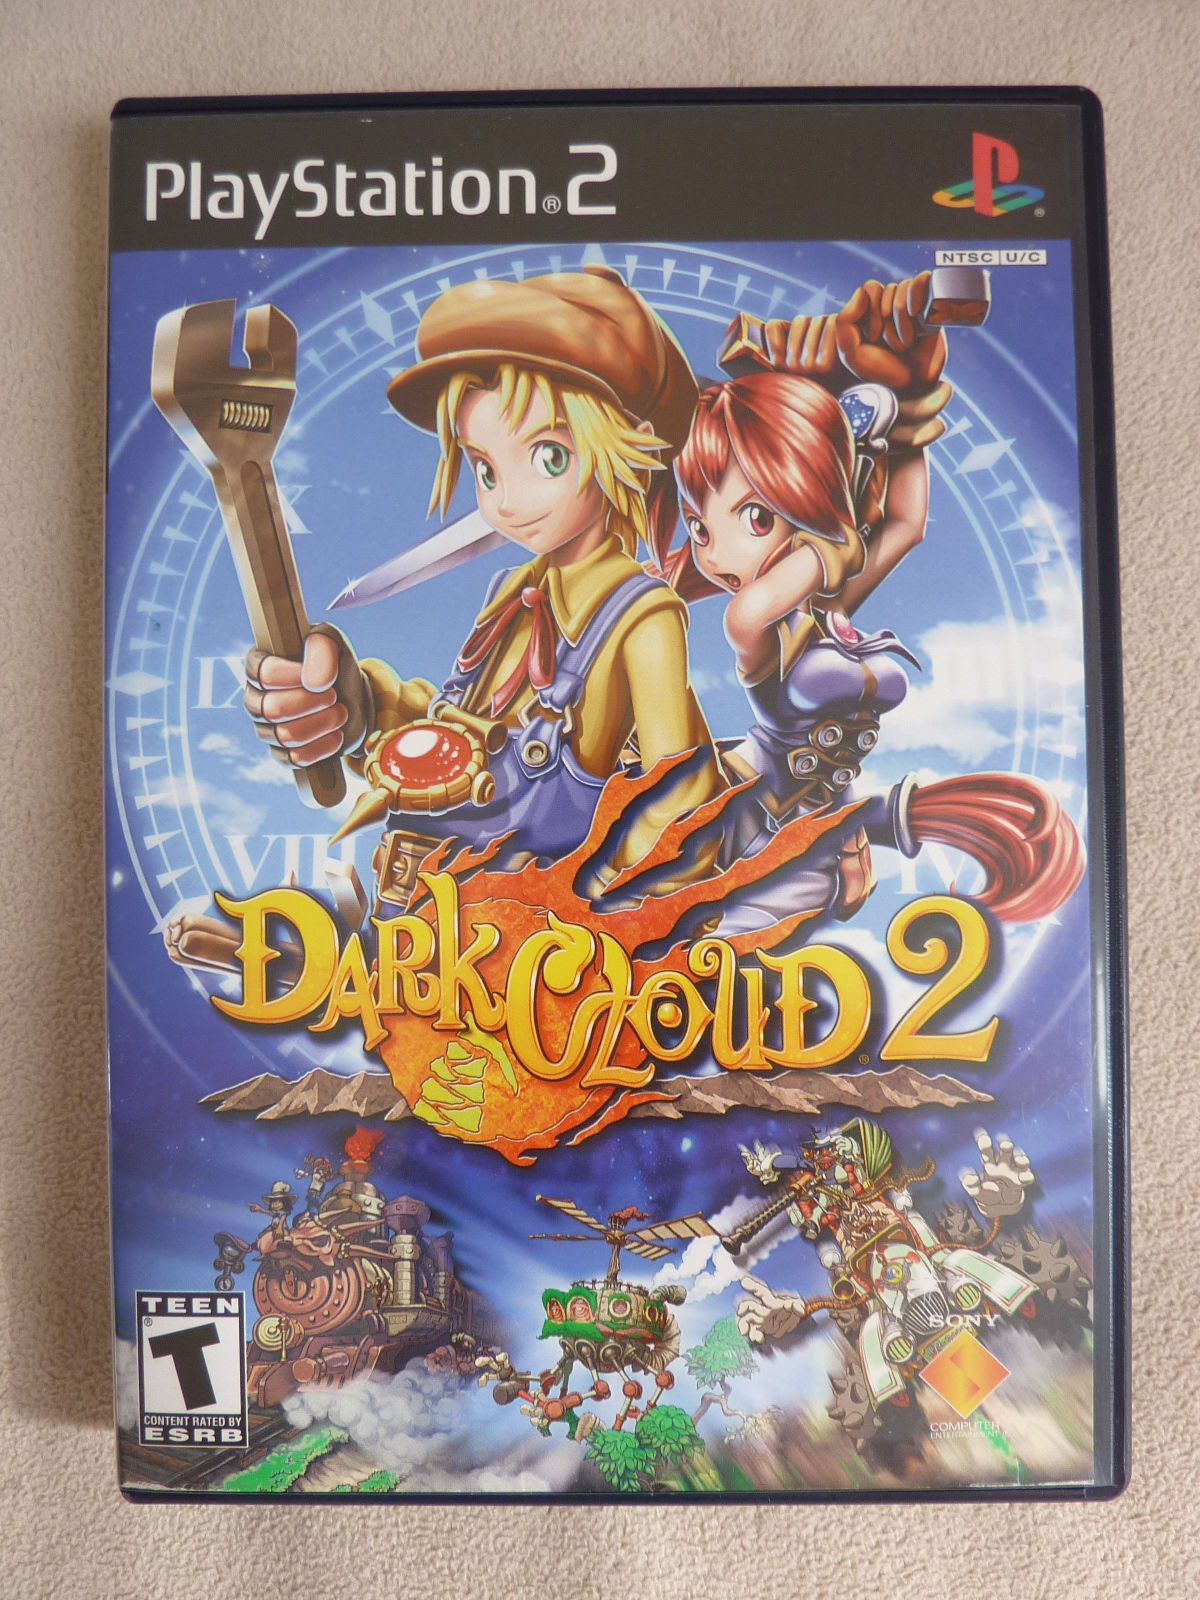 Dark Cloud 2 (PlayStation 2, 2003) Black Label Complete PS2 RPG Free Shipping!!!